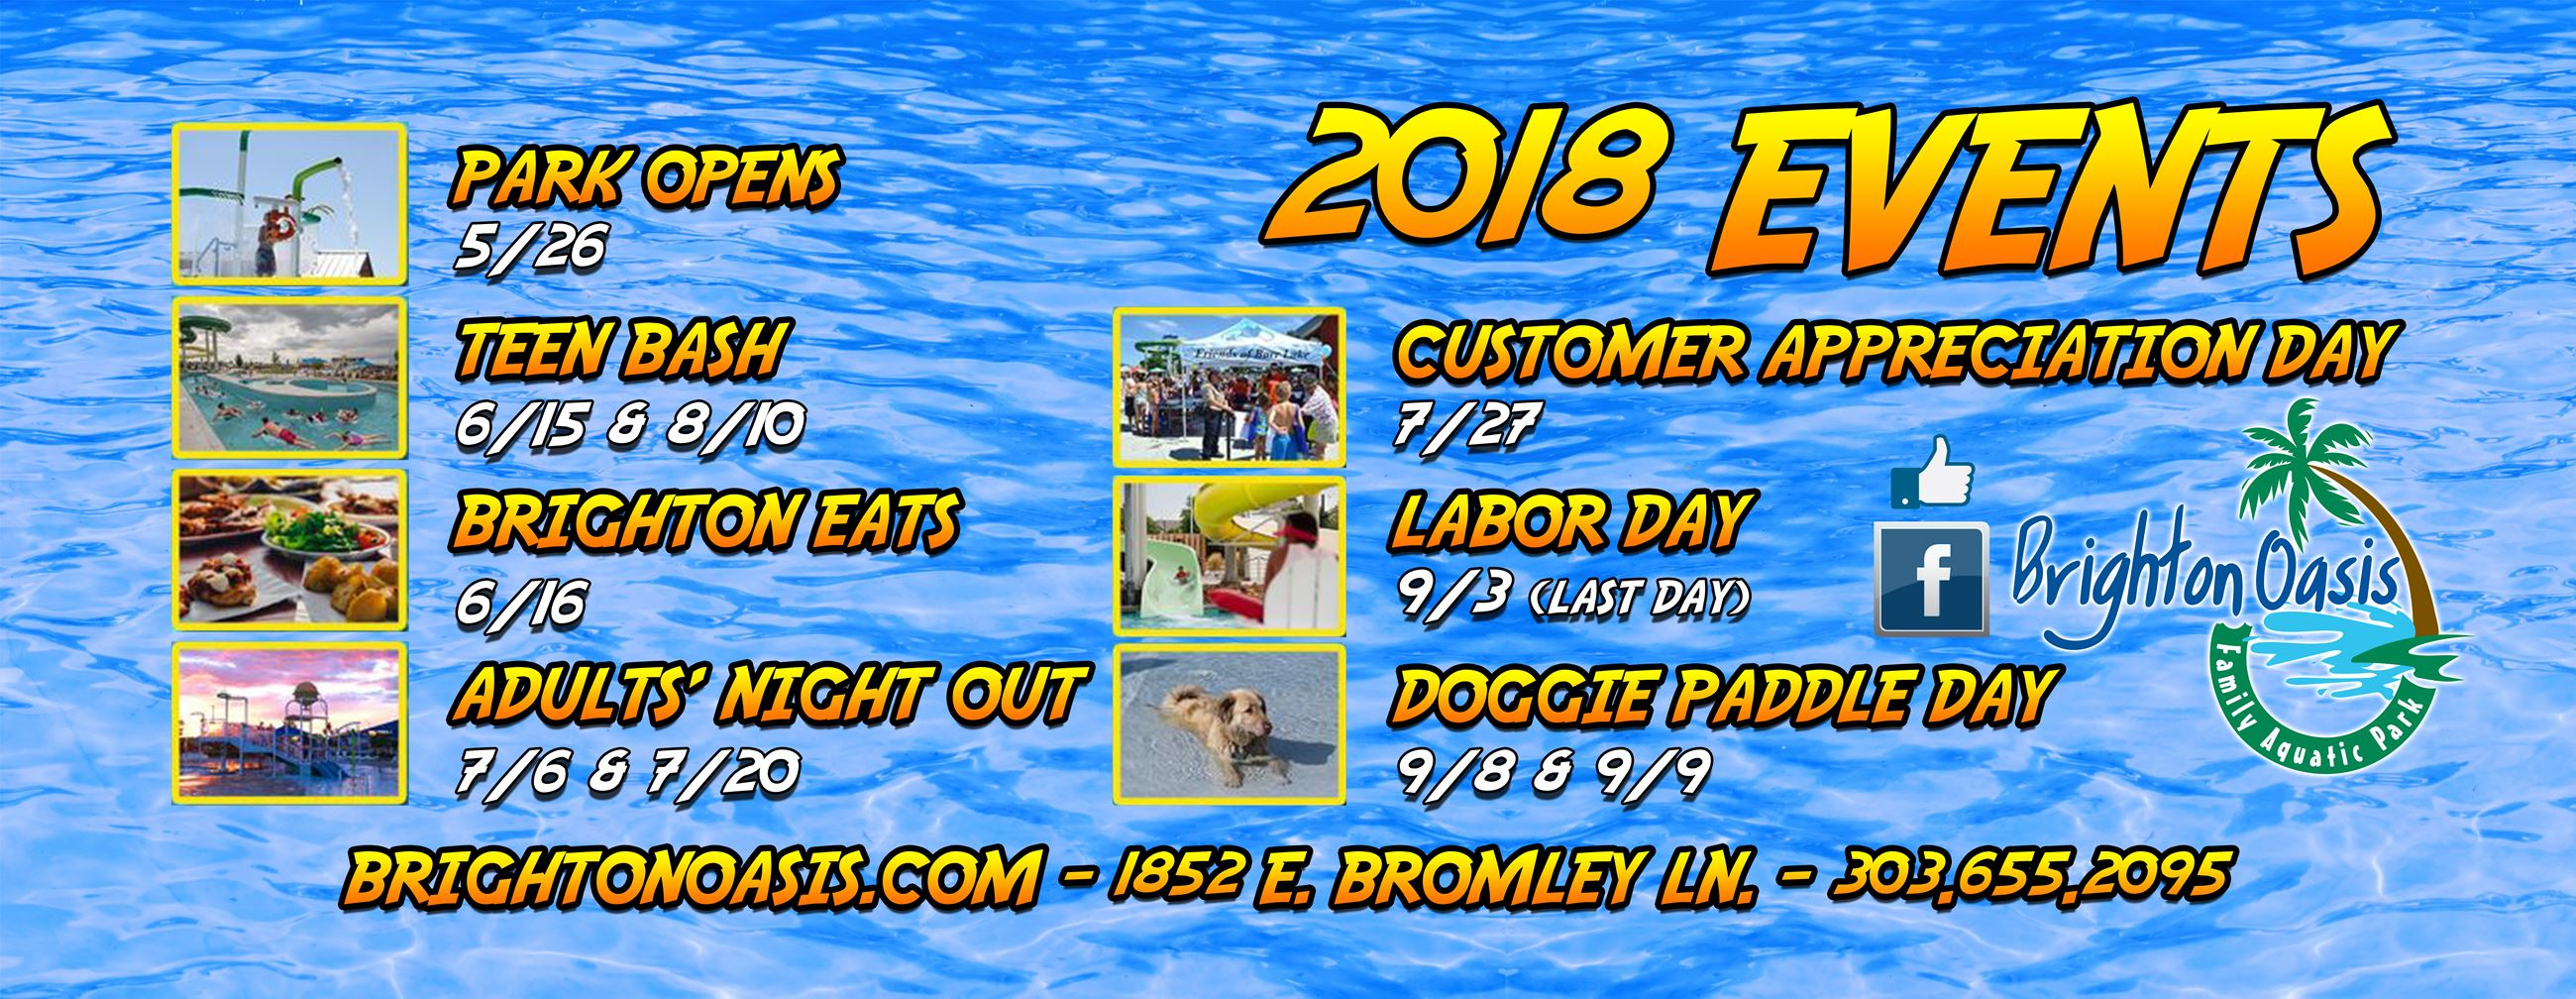 OASIS 2018 EVENTS BANNER 8X3